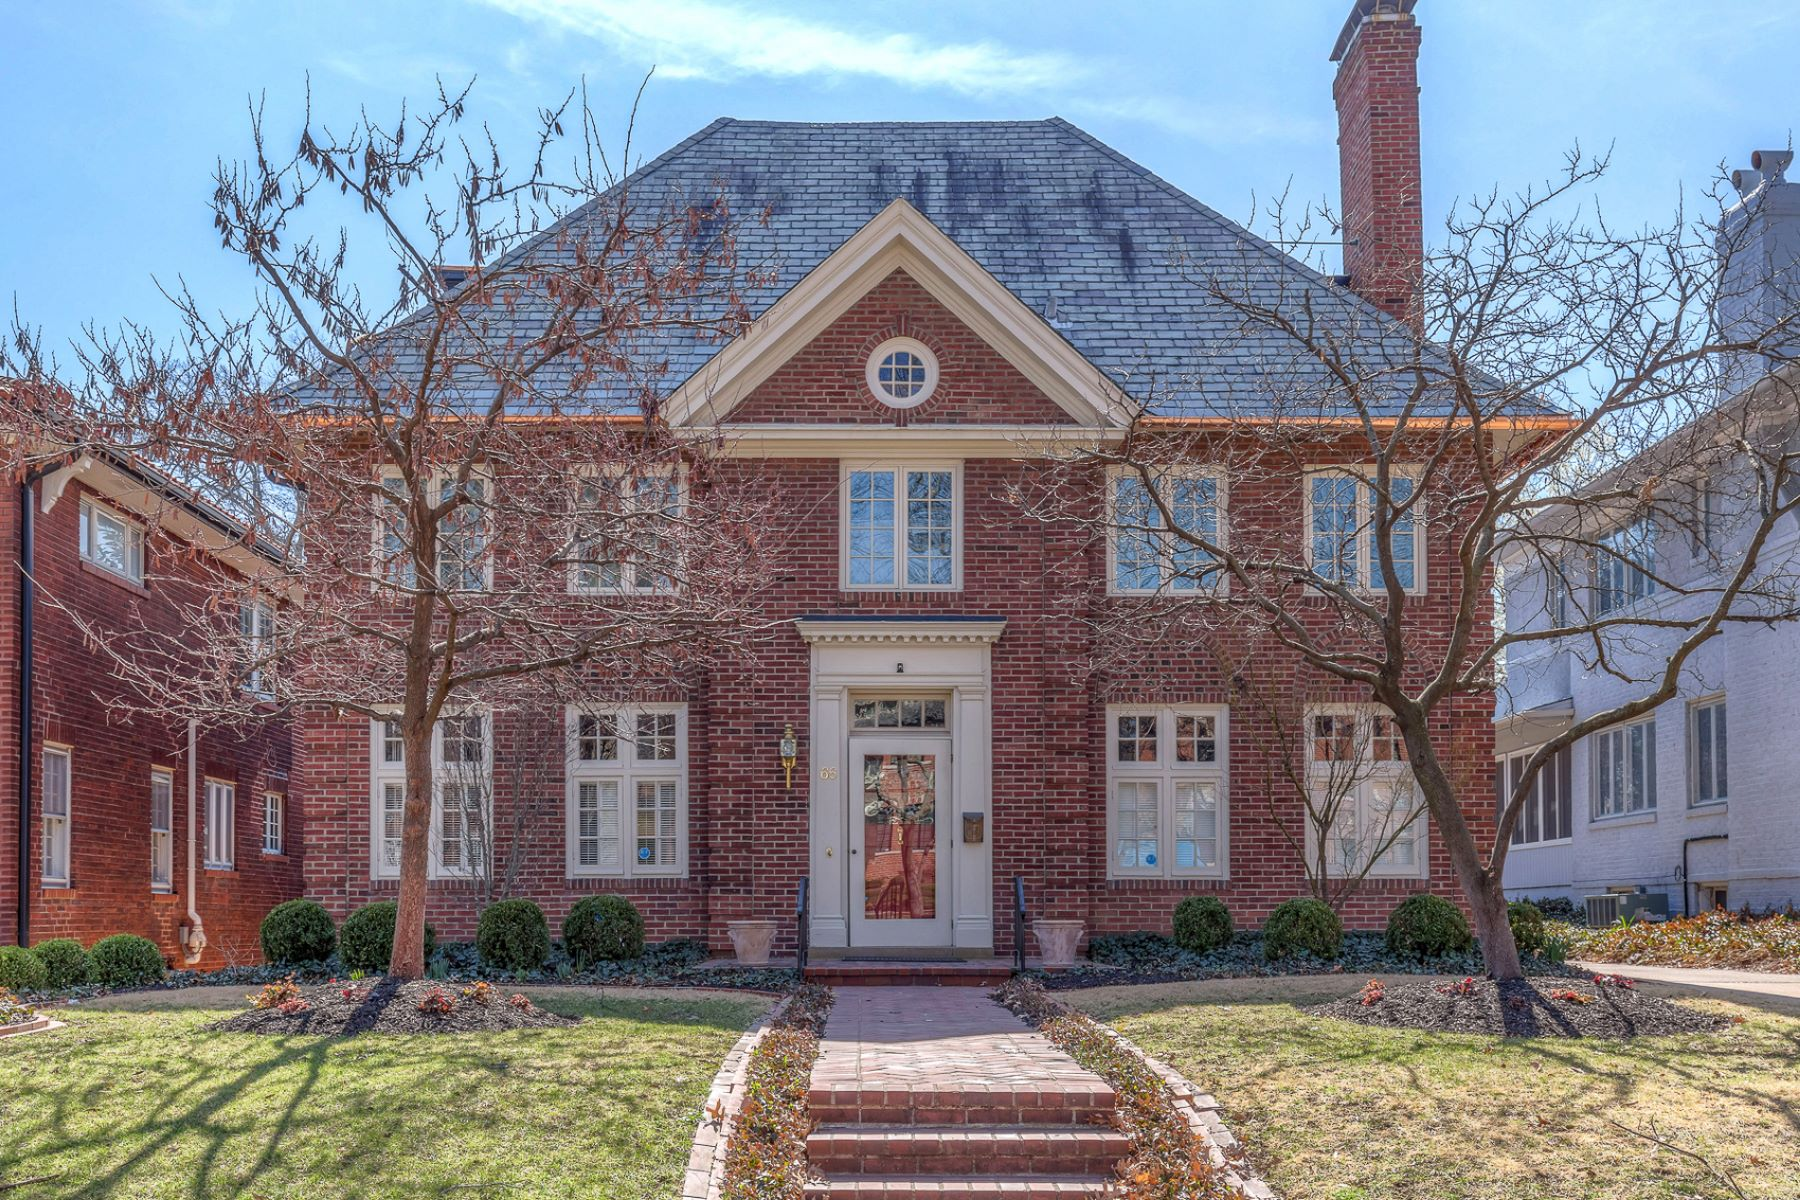 Single Family Home for Sale at Arundel Place 66 Arundel Place Clayton, Missouri 63105 United States